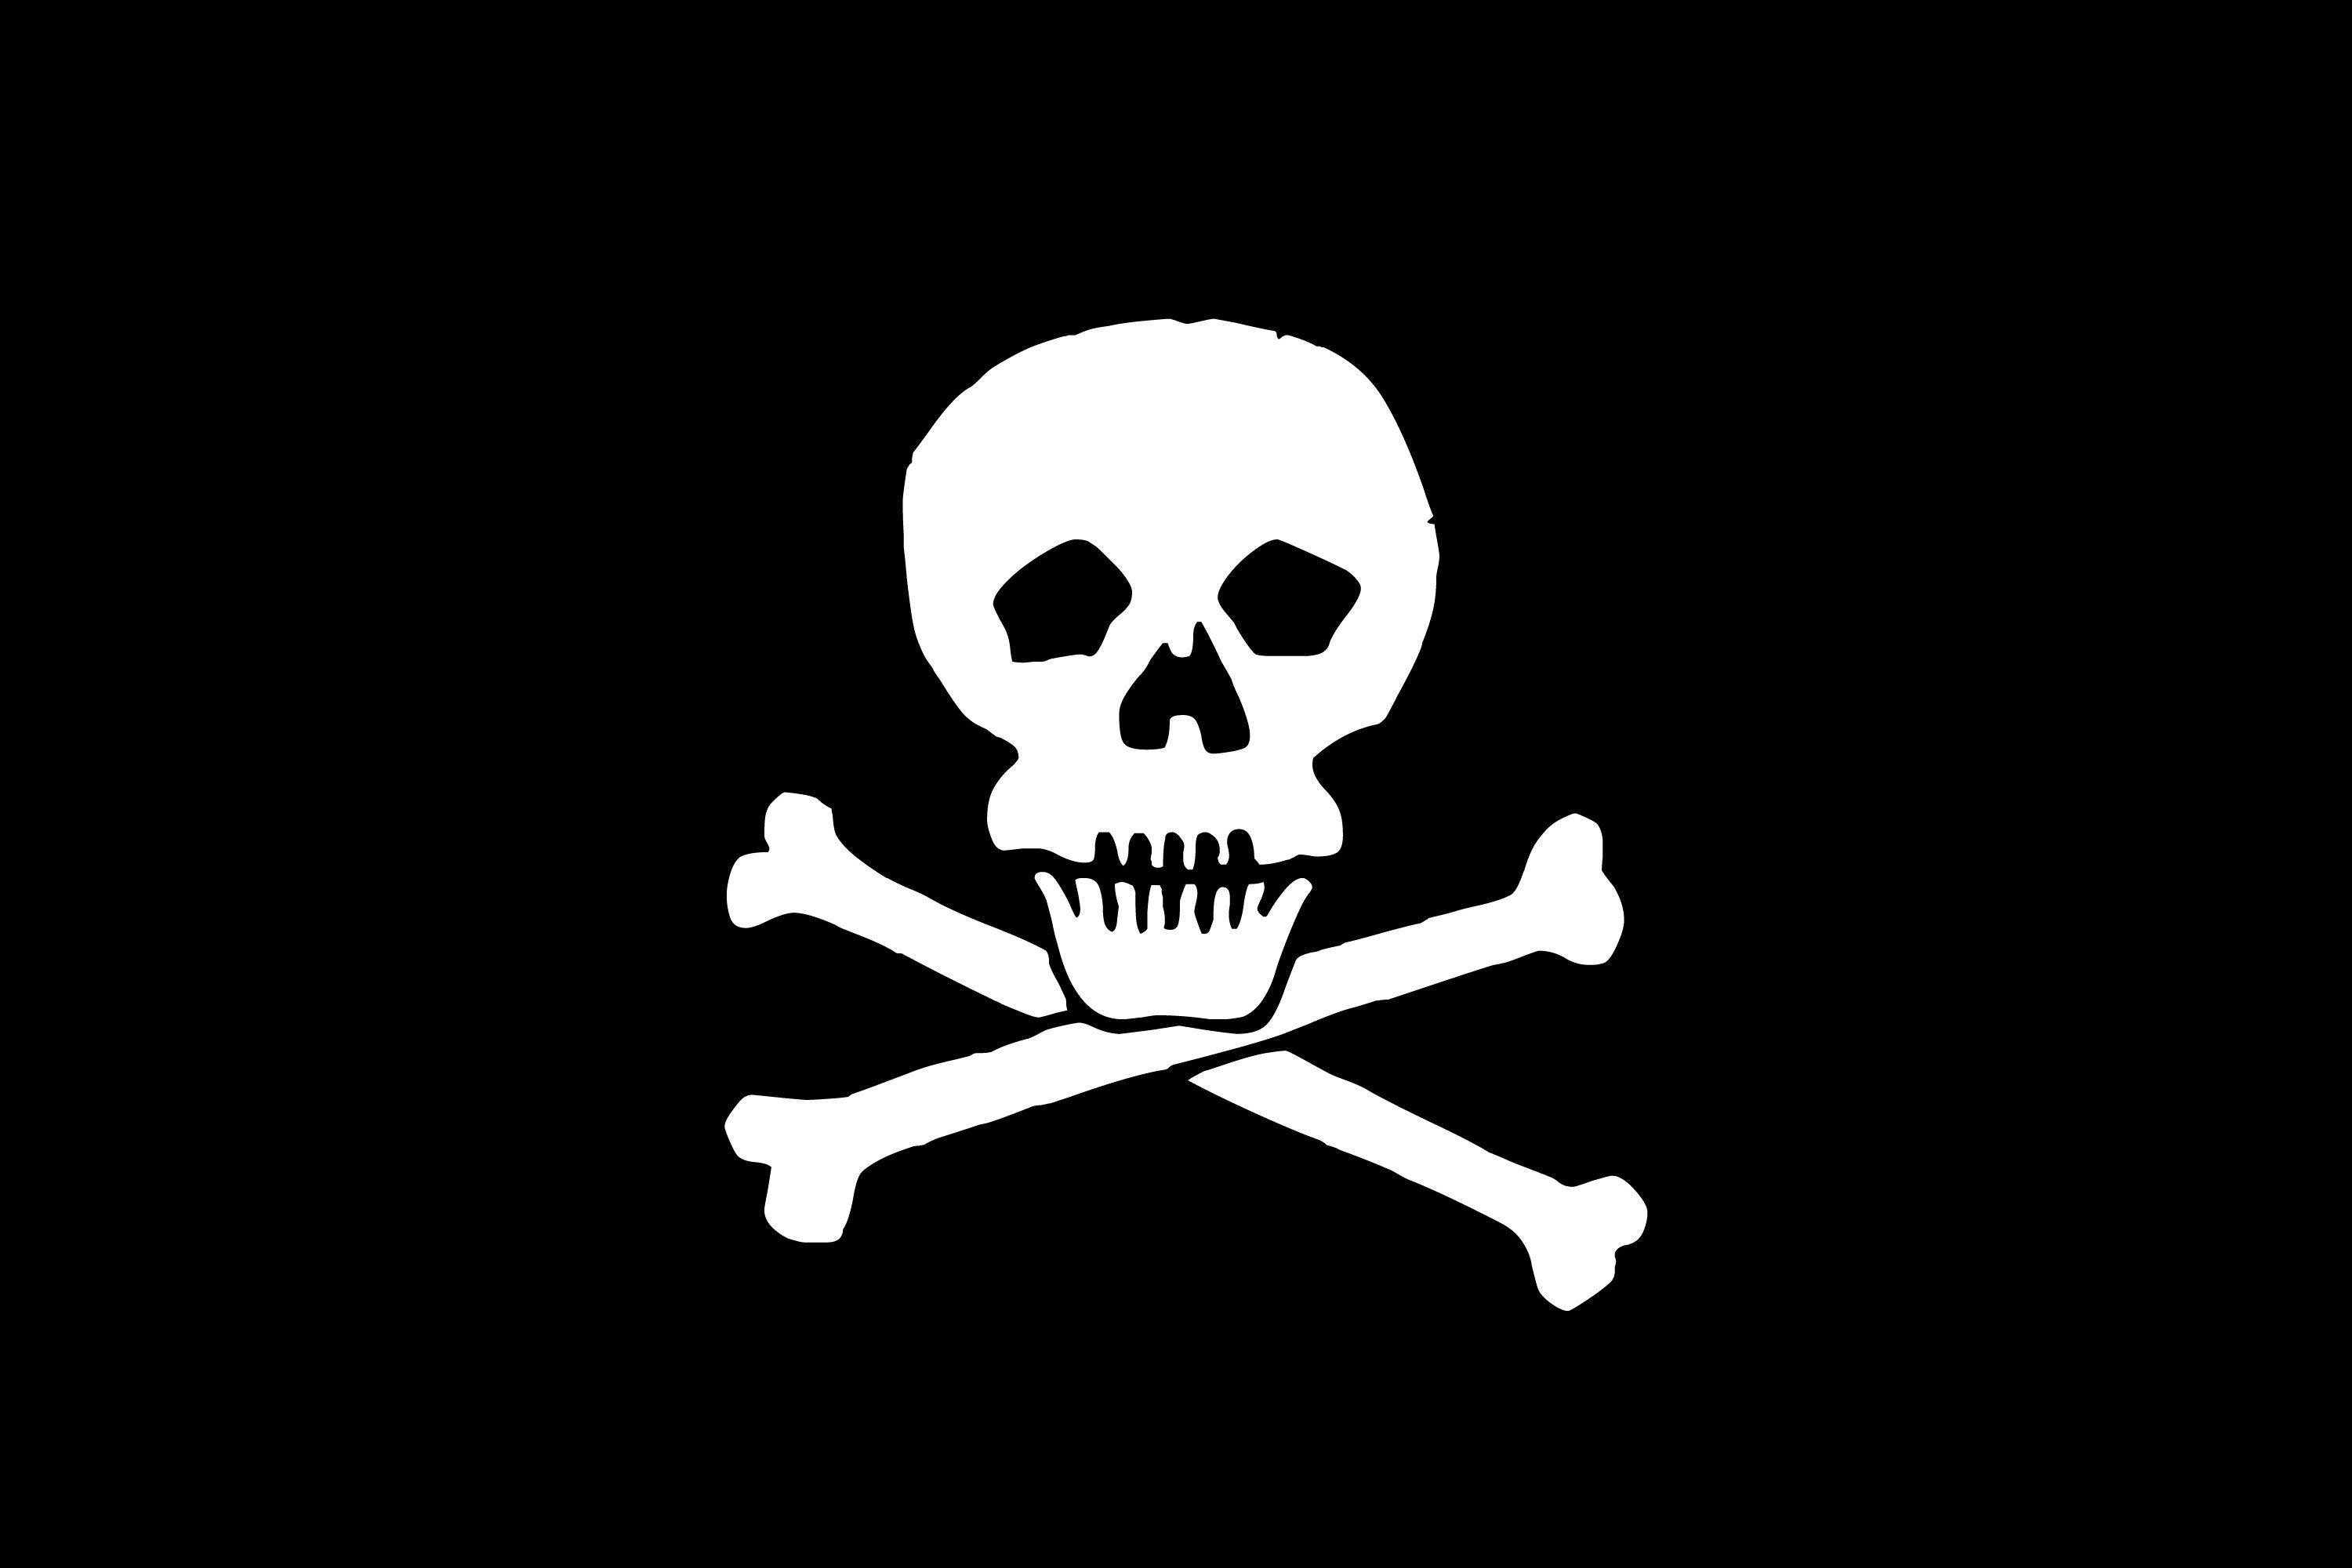 3000x2000 Skull-black-background #2424 | picttop.